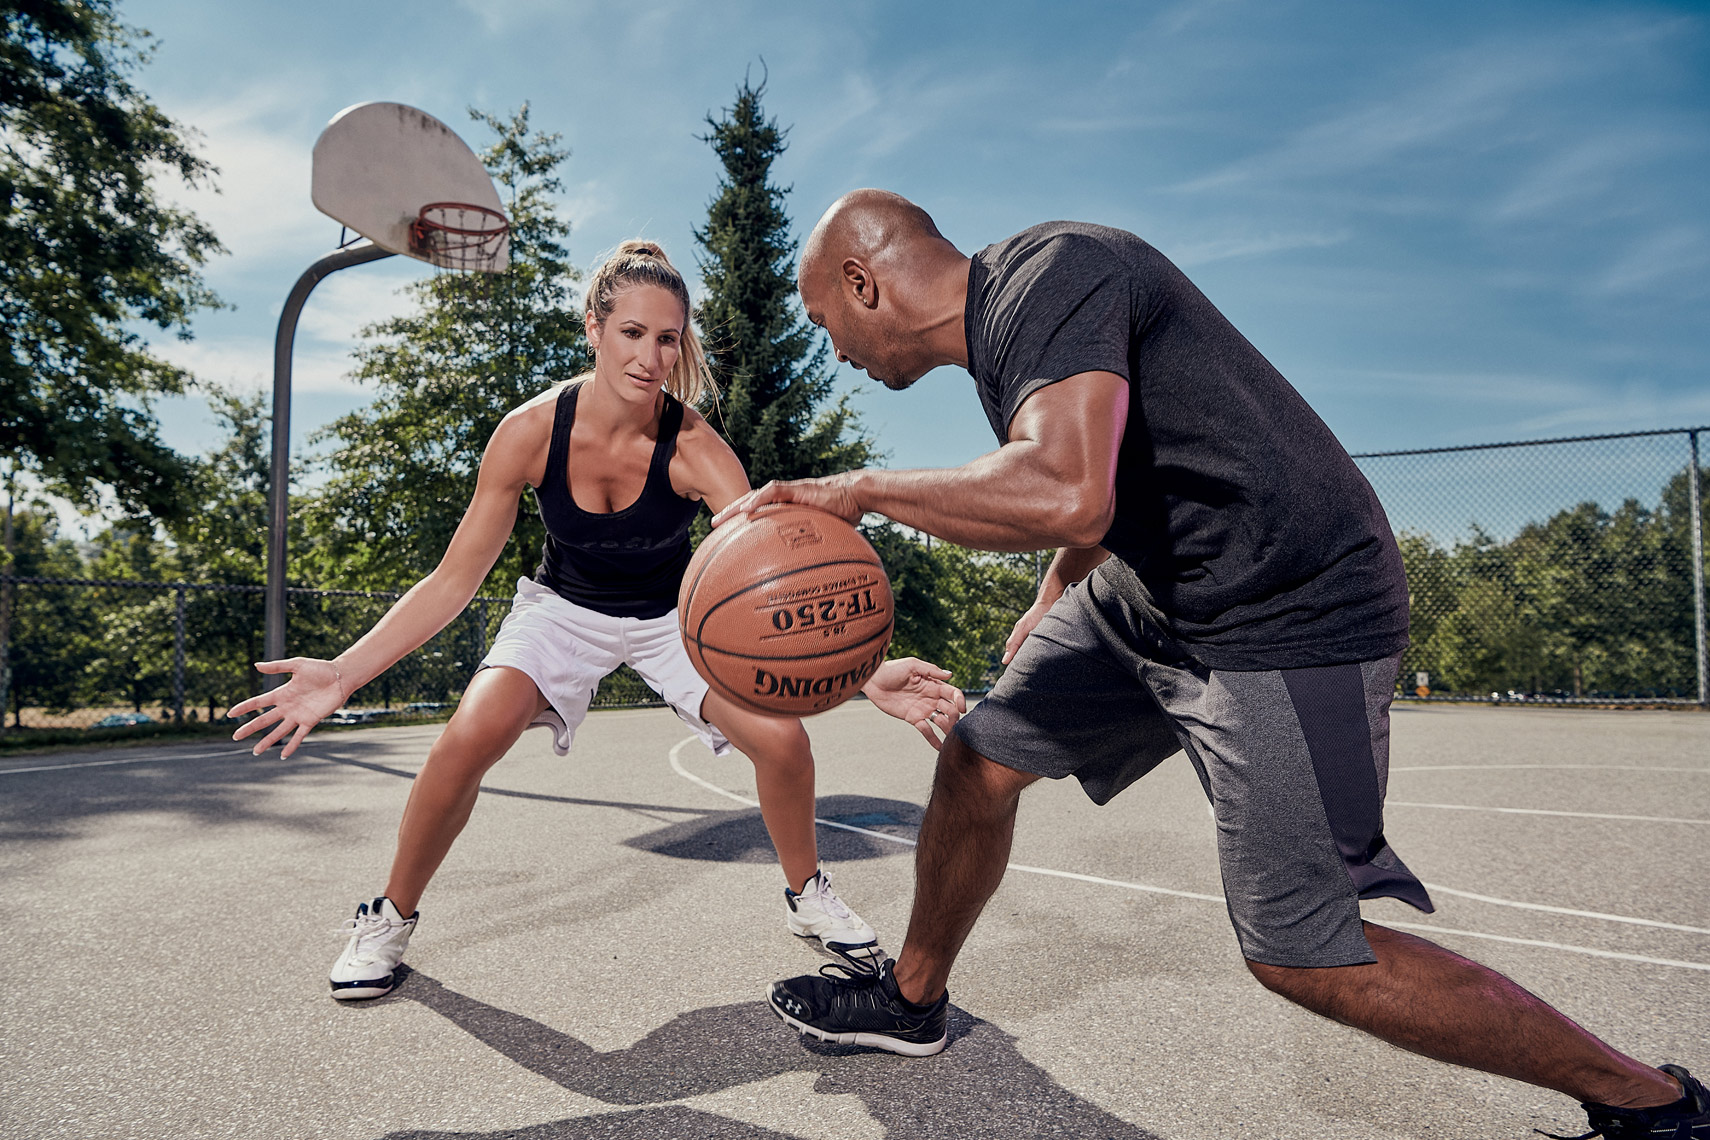 2017-Vancouver-SportsandFitness-Photographer-ErichSaide-Advertising-Reflex-Supplements-Basketball